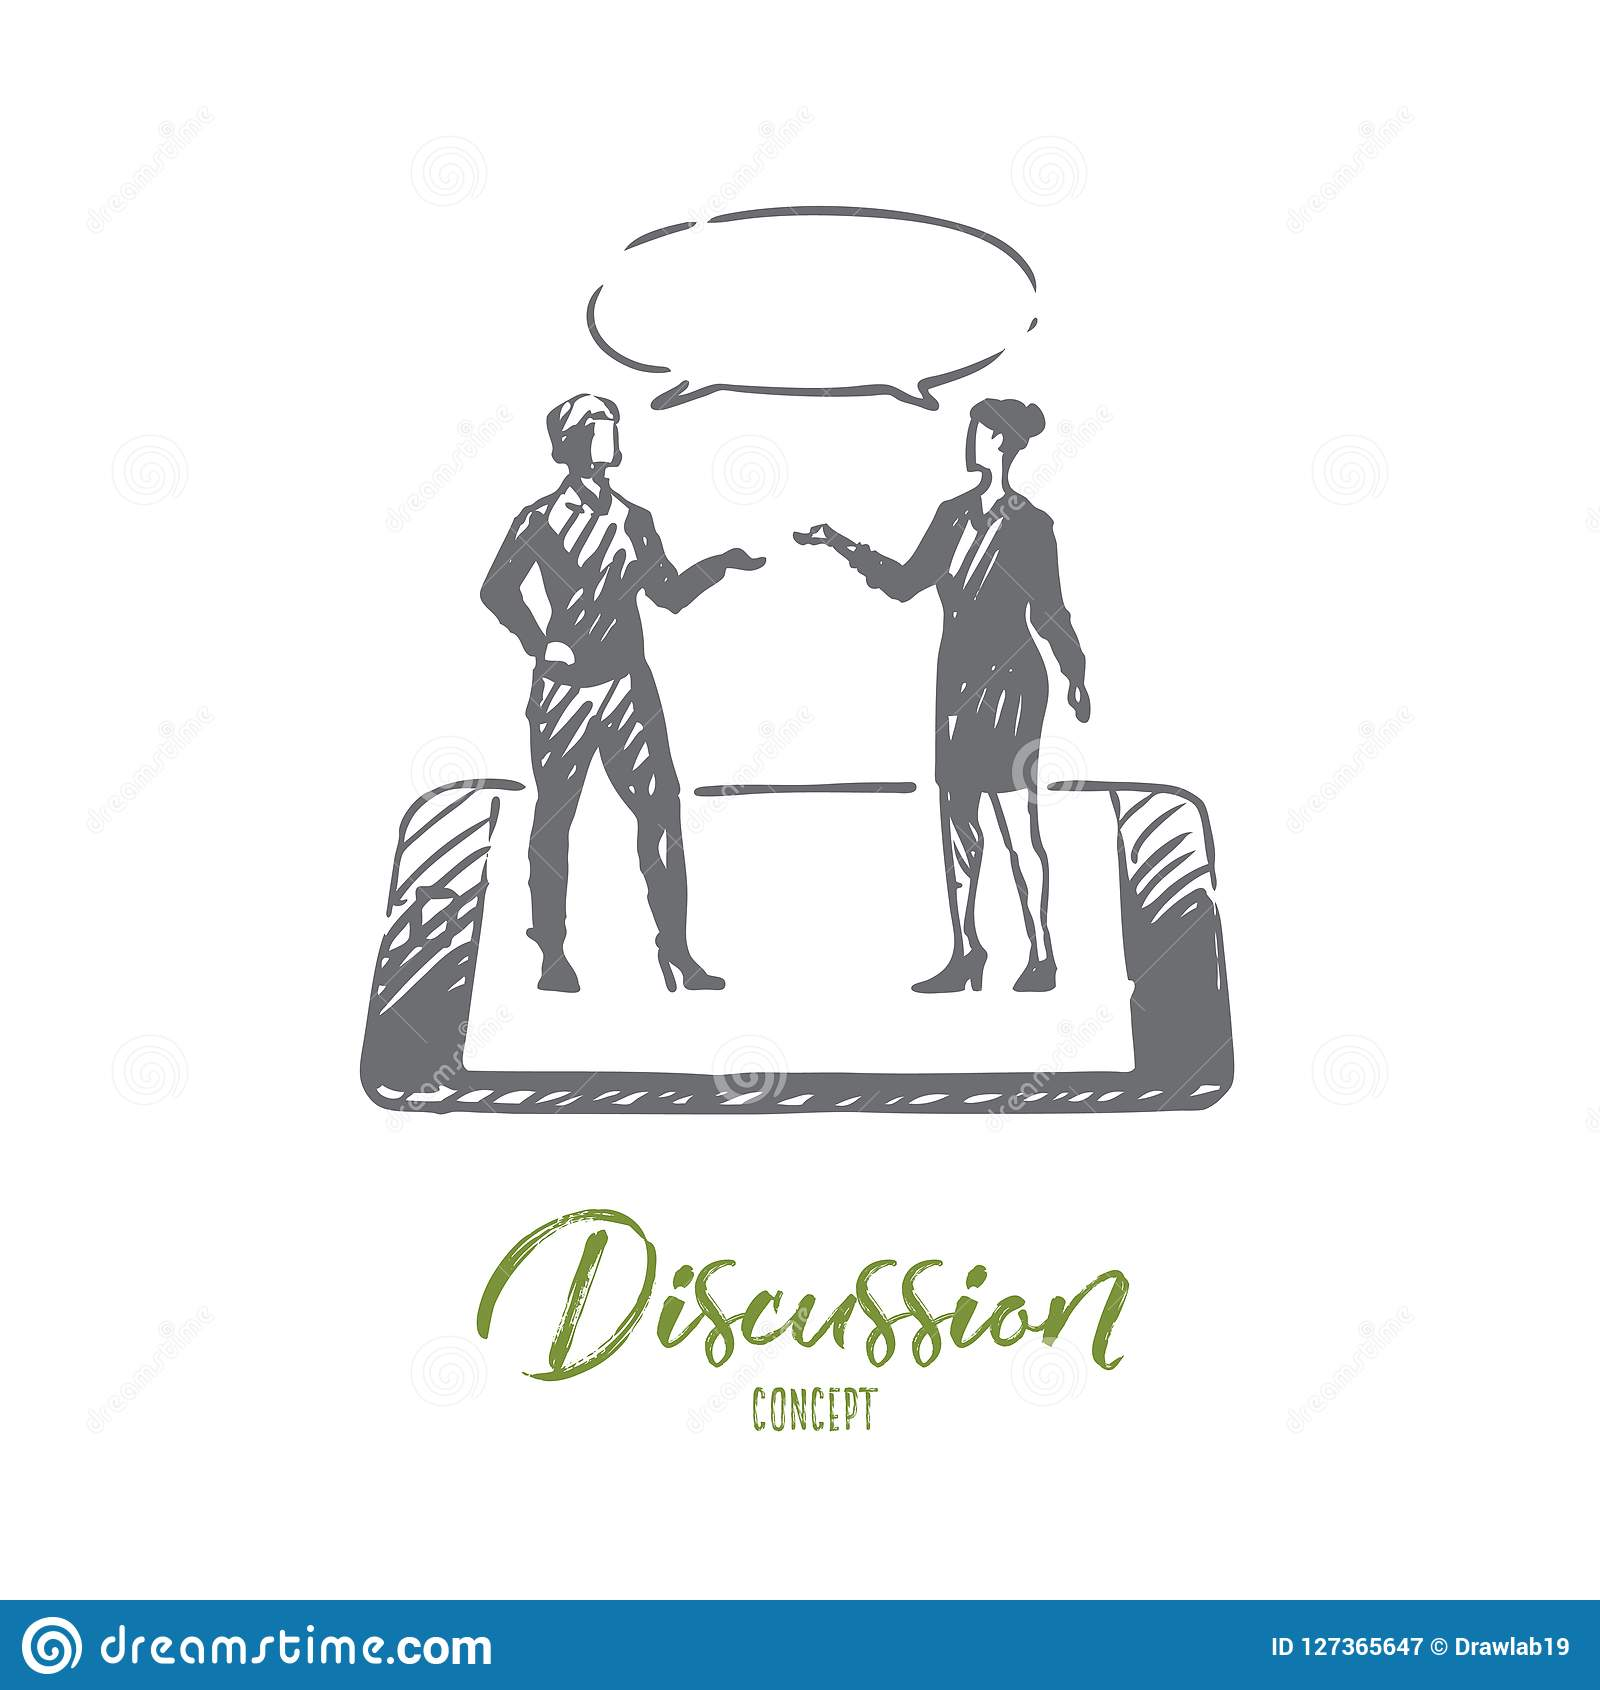 Discussion, talk, conversation, dialog, person concept. Hand drawn isolated vector.